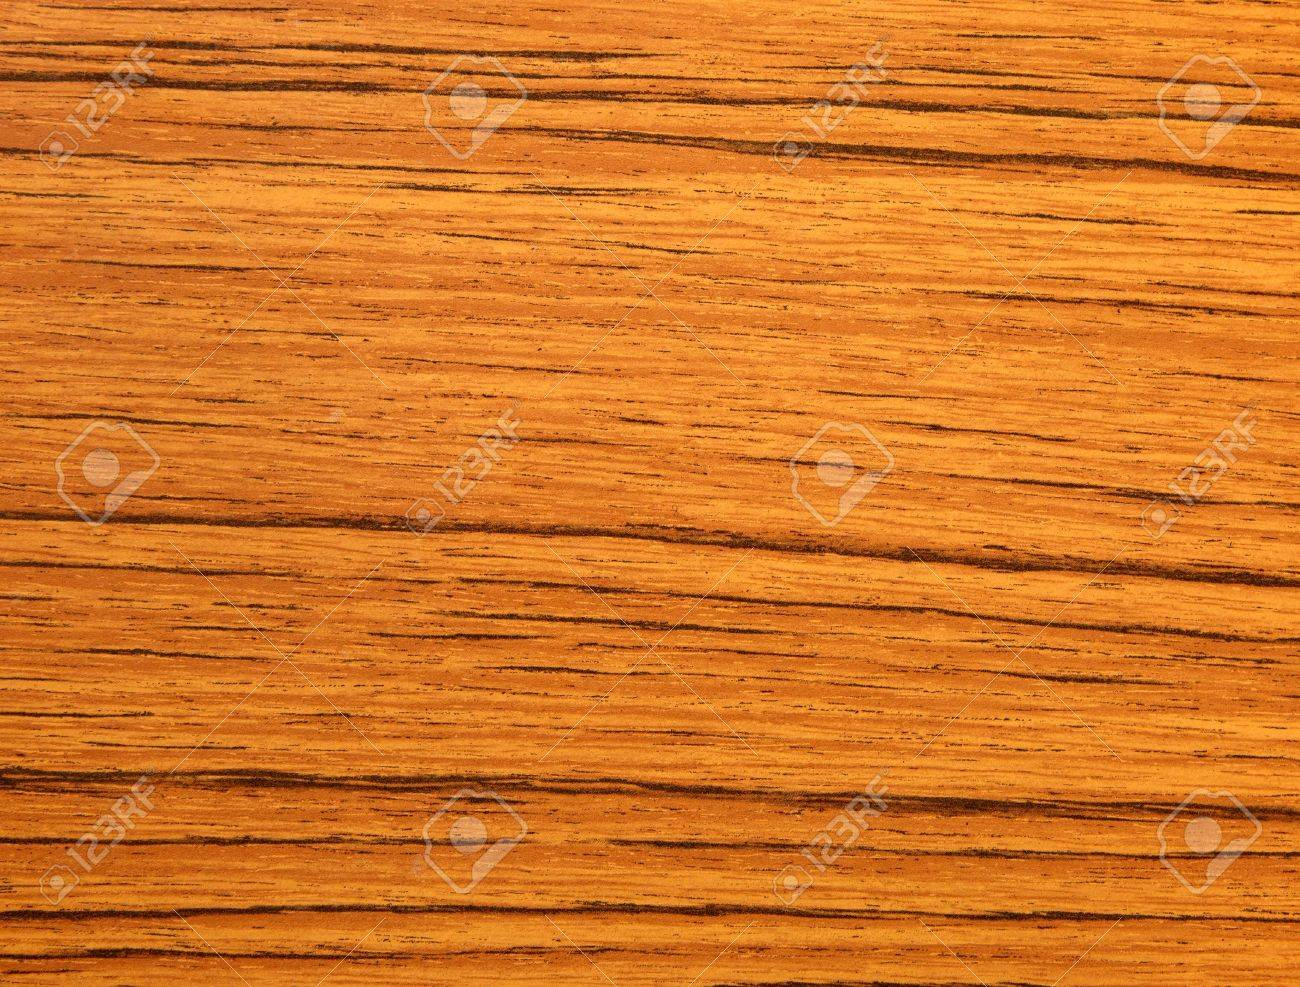 Wooden table background pattern - Formica Table Wood Grain And Lines Pattern Background Stock Photo 2863808